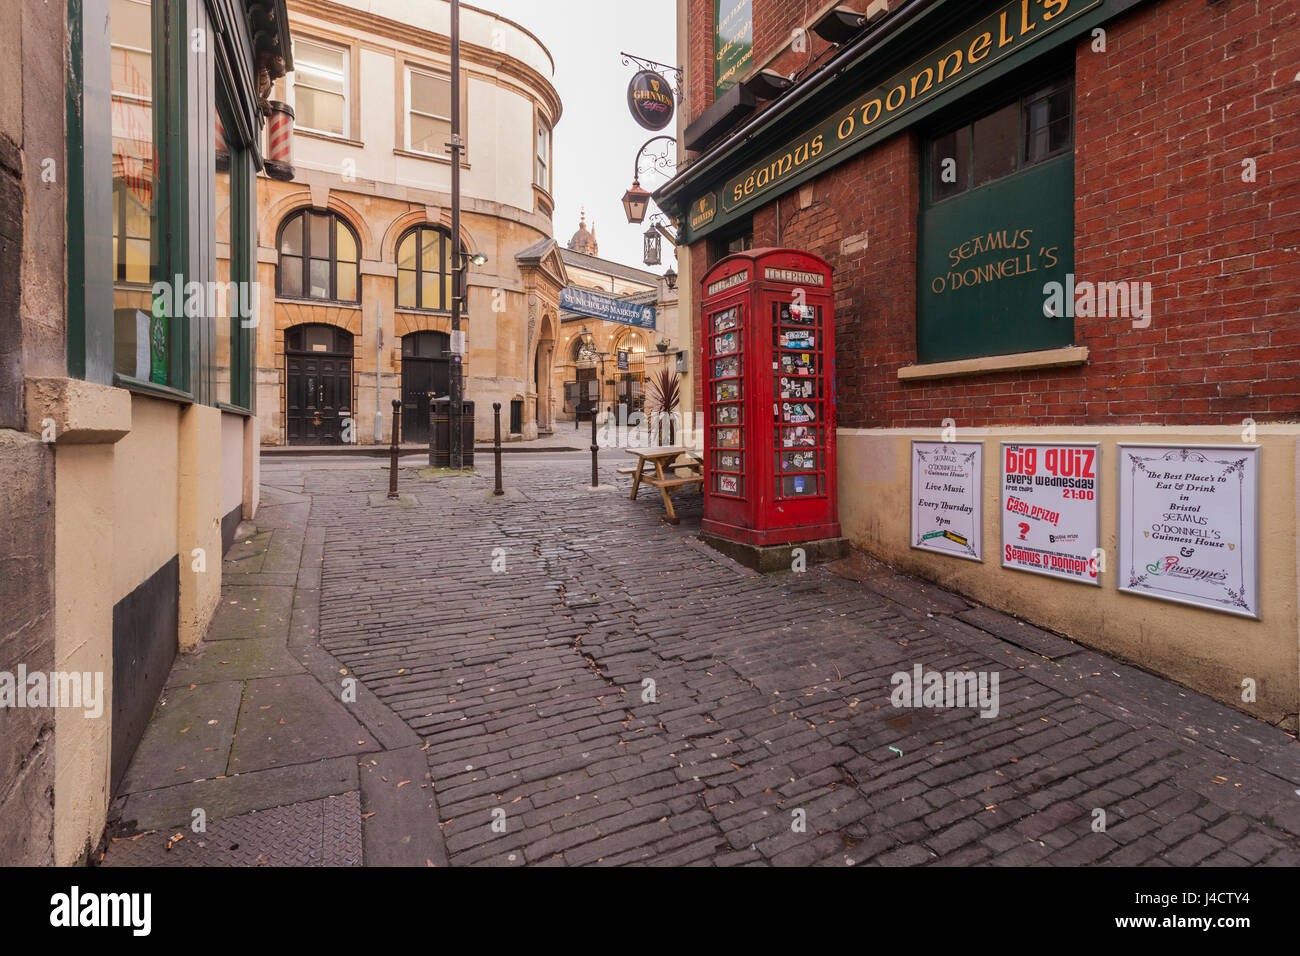 A view towards St. Nicholas Market, showing an old Red Telephone Kiosk. - Stock Image